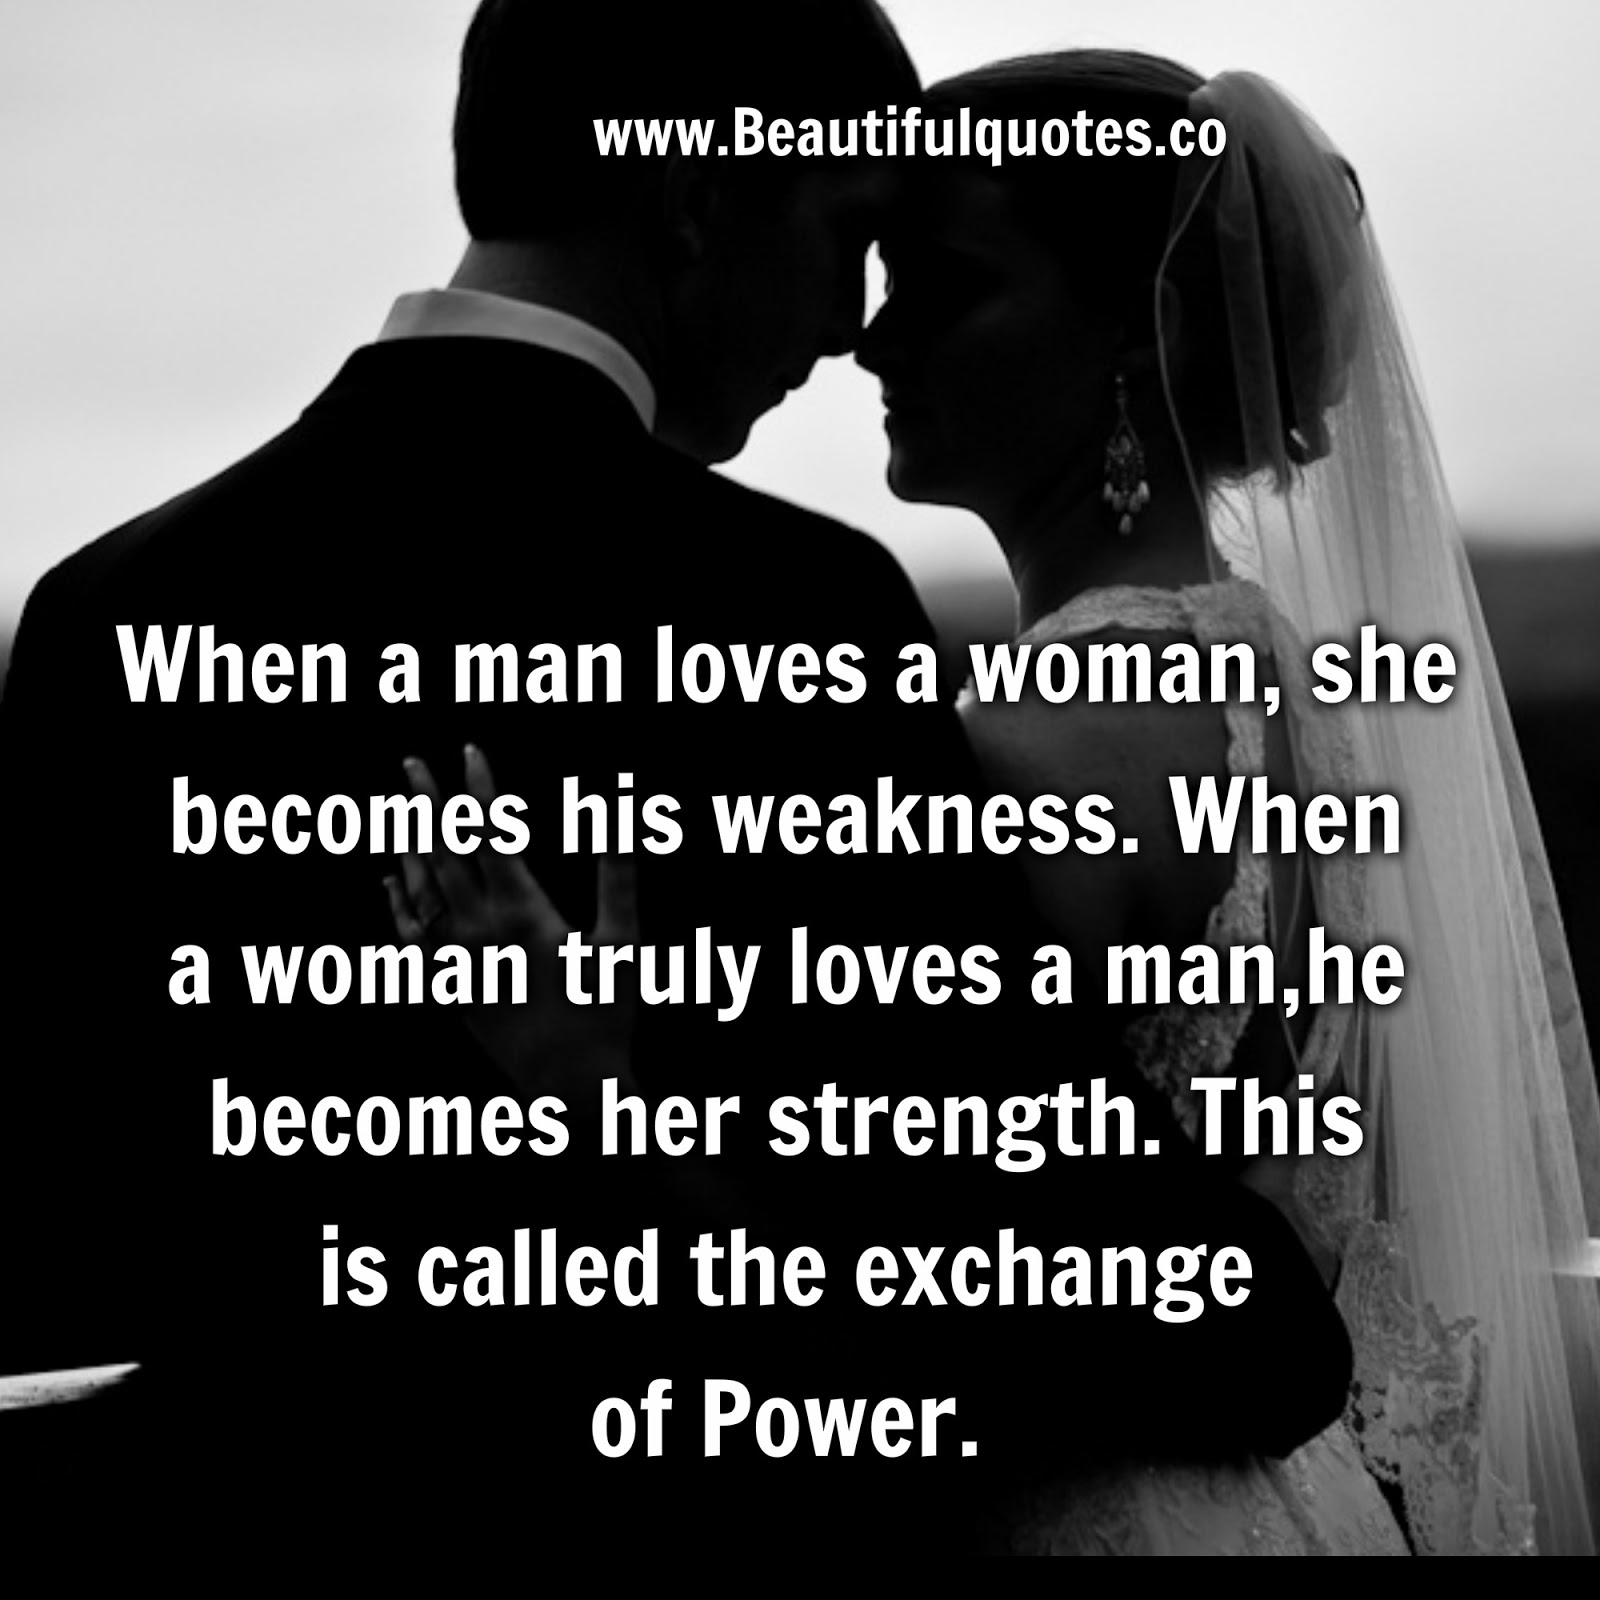 How To Love A Woman Quotes Beautiful Quotes When A Man Loves A Woman